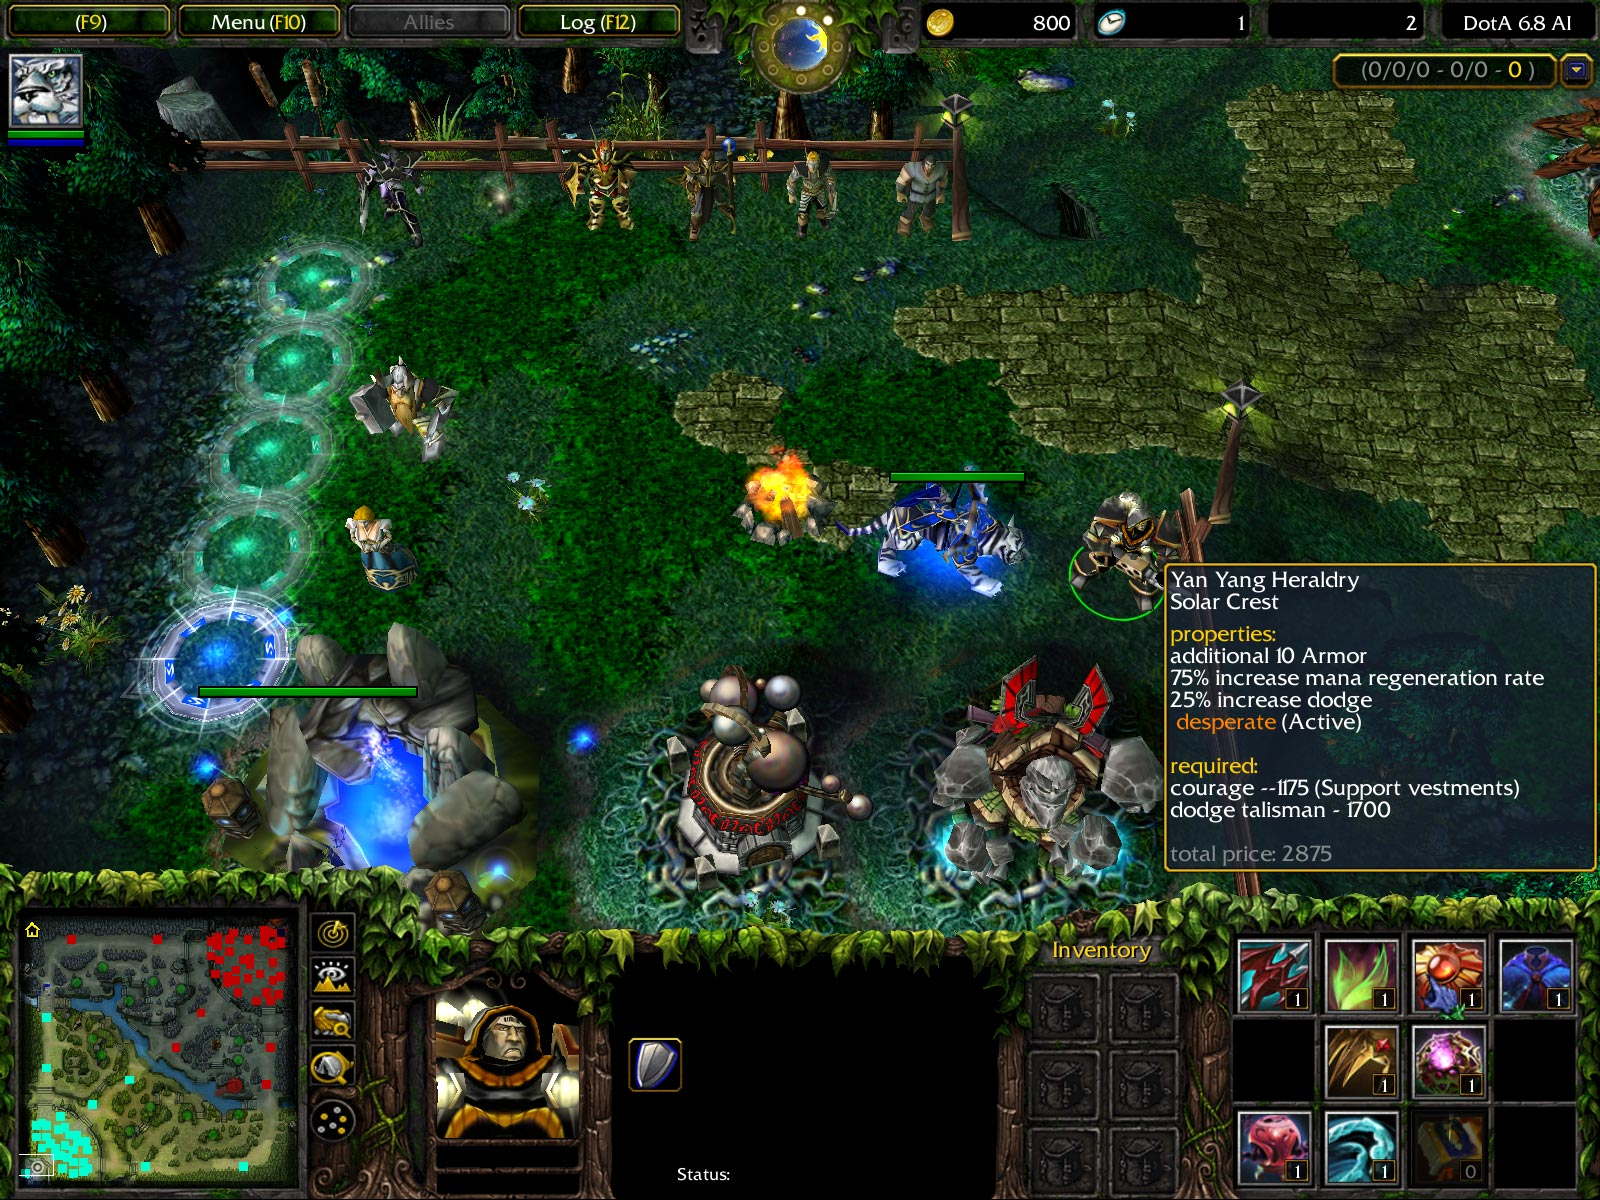 Dota Allstars 6.88 Ai Screenshot